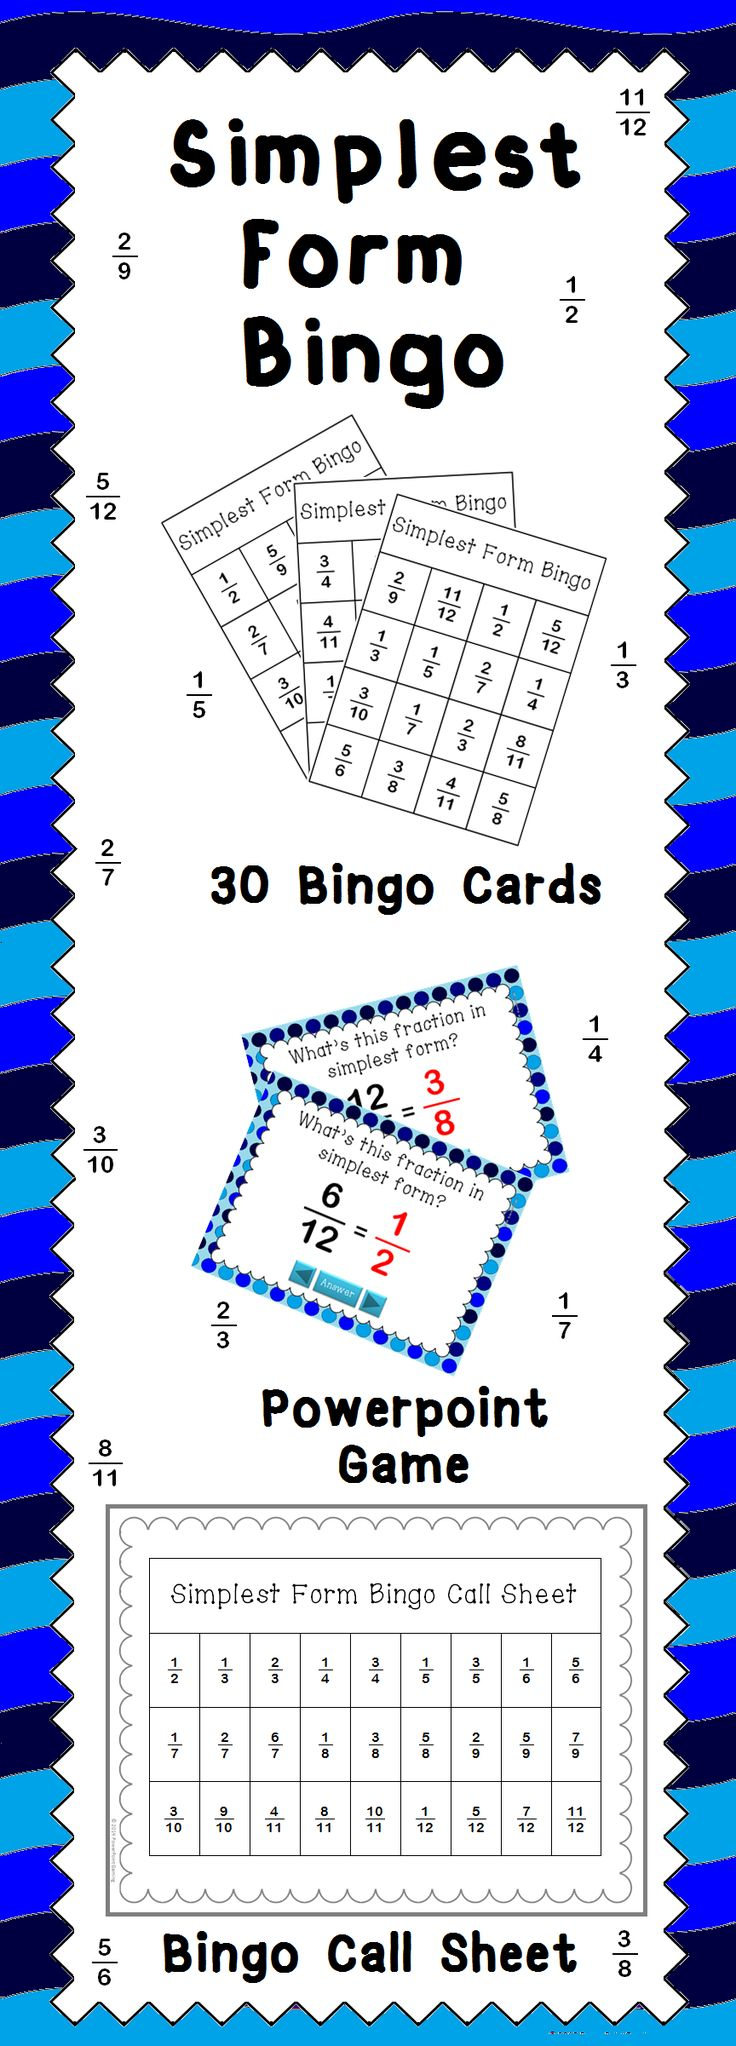 A bingo game for simplest form fraction. Good practice to find equivalent fractions as well. Common core aligned! Comes with 15 bingo cards (30 total), call sheet, and the bingo powerpoint game. Also includes a blank bingo card to replace lost or damamged bingo cards or to have students create their own boards.